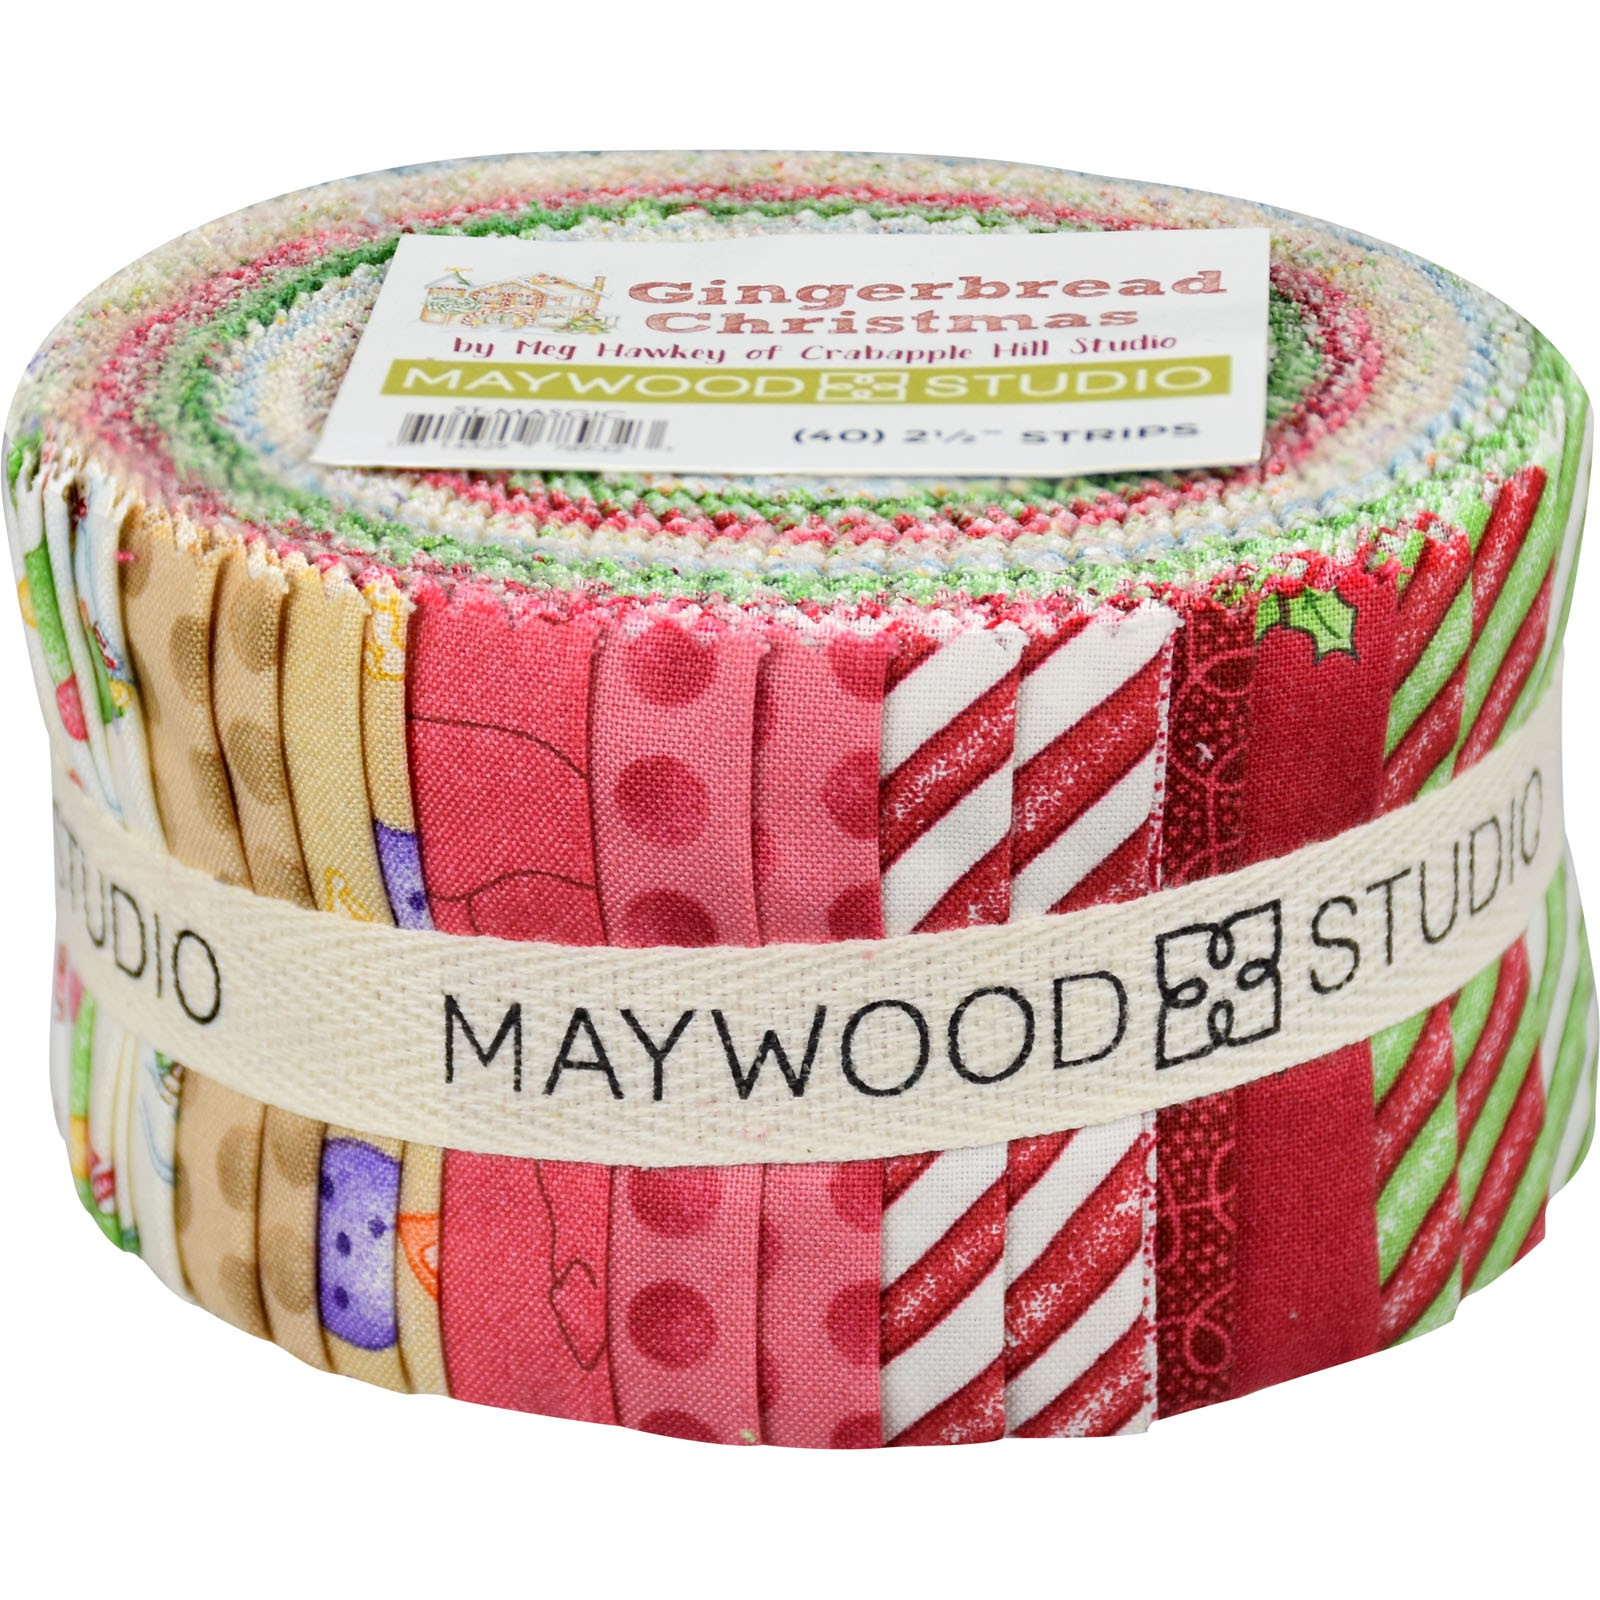 981a78dfee48aa Maywood Gingerbread Christmas by Meg Hawkey ST-MASGIC 40 PIECE JELLY ROLL 2  1 2